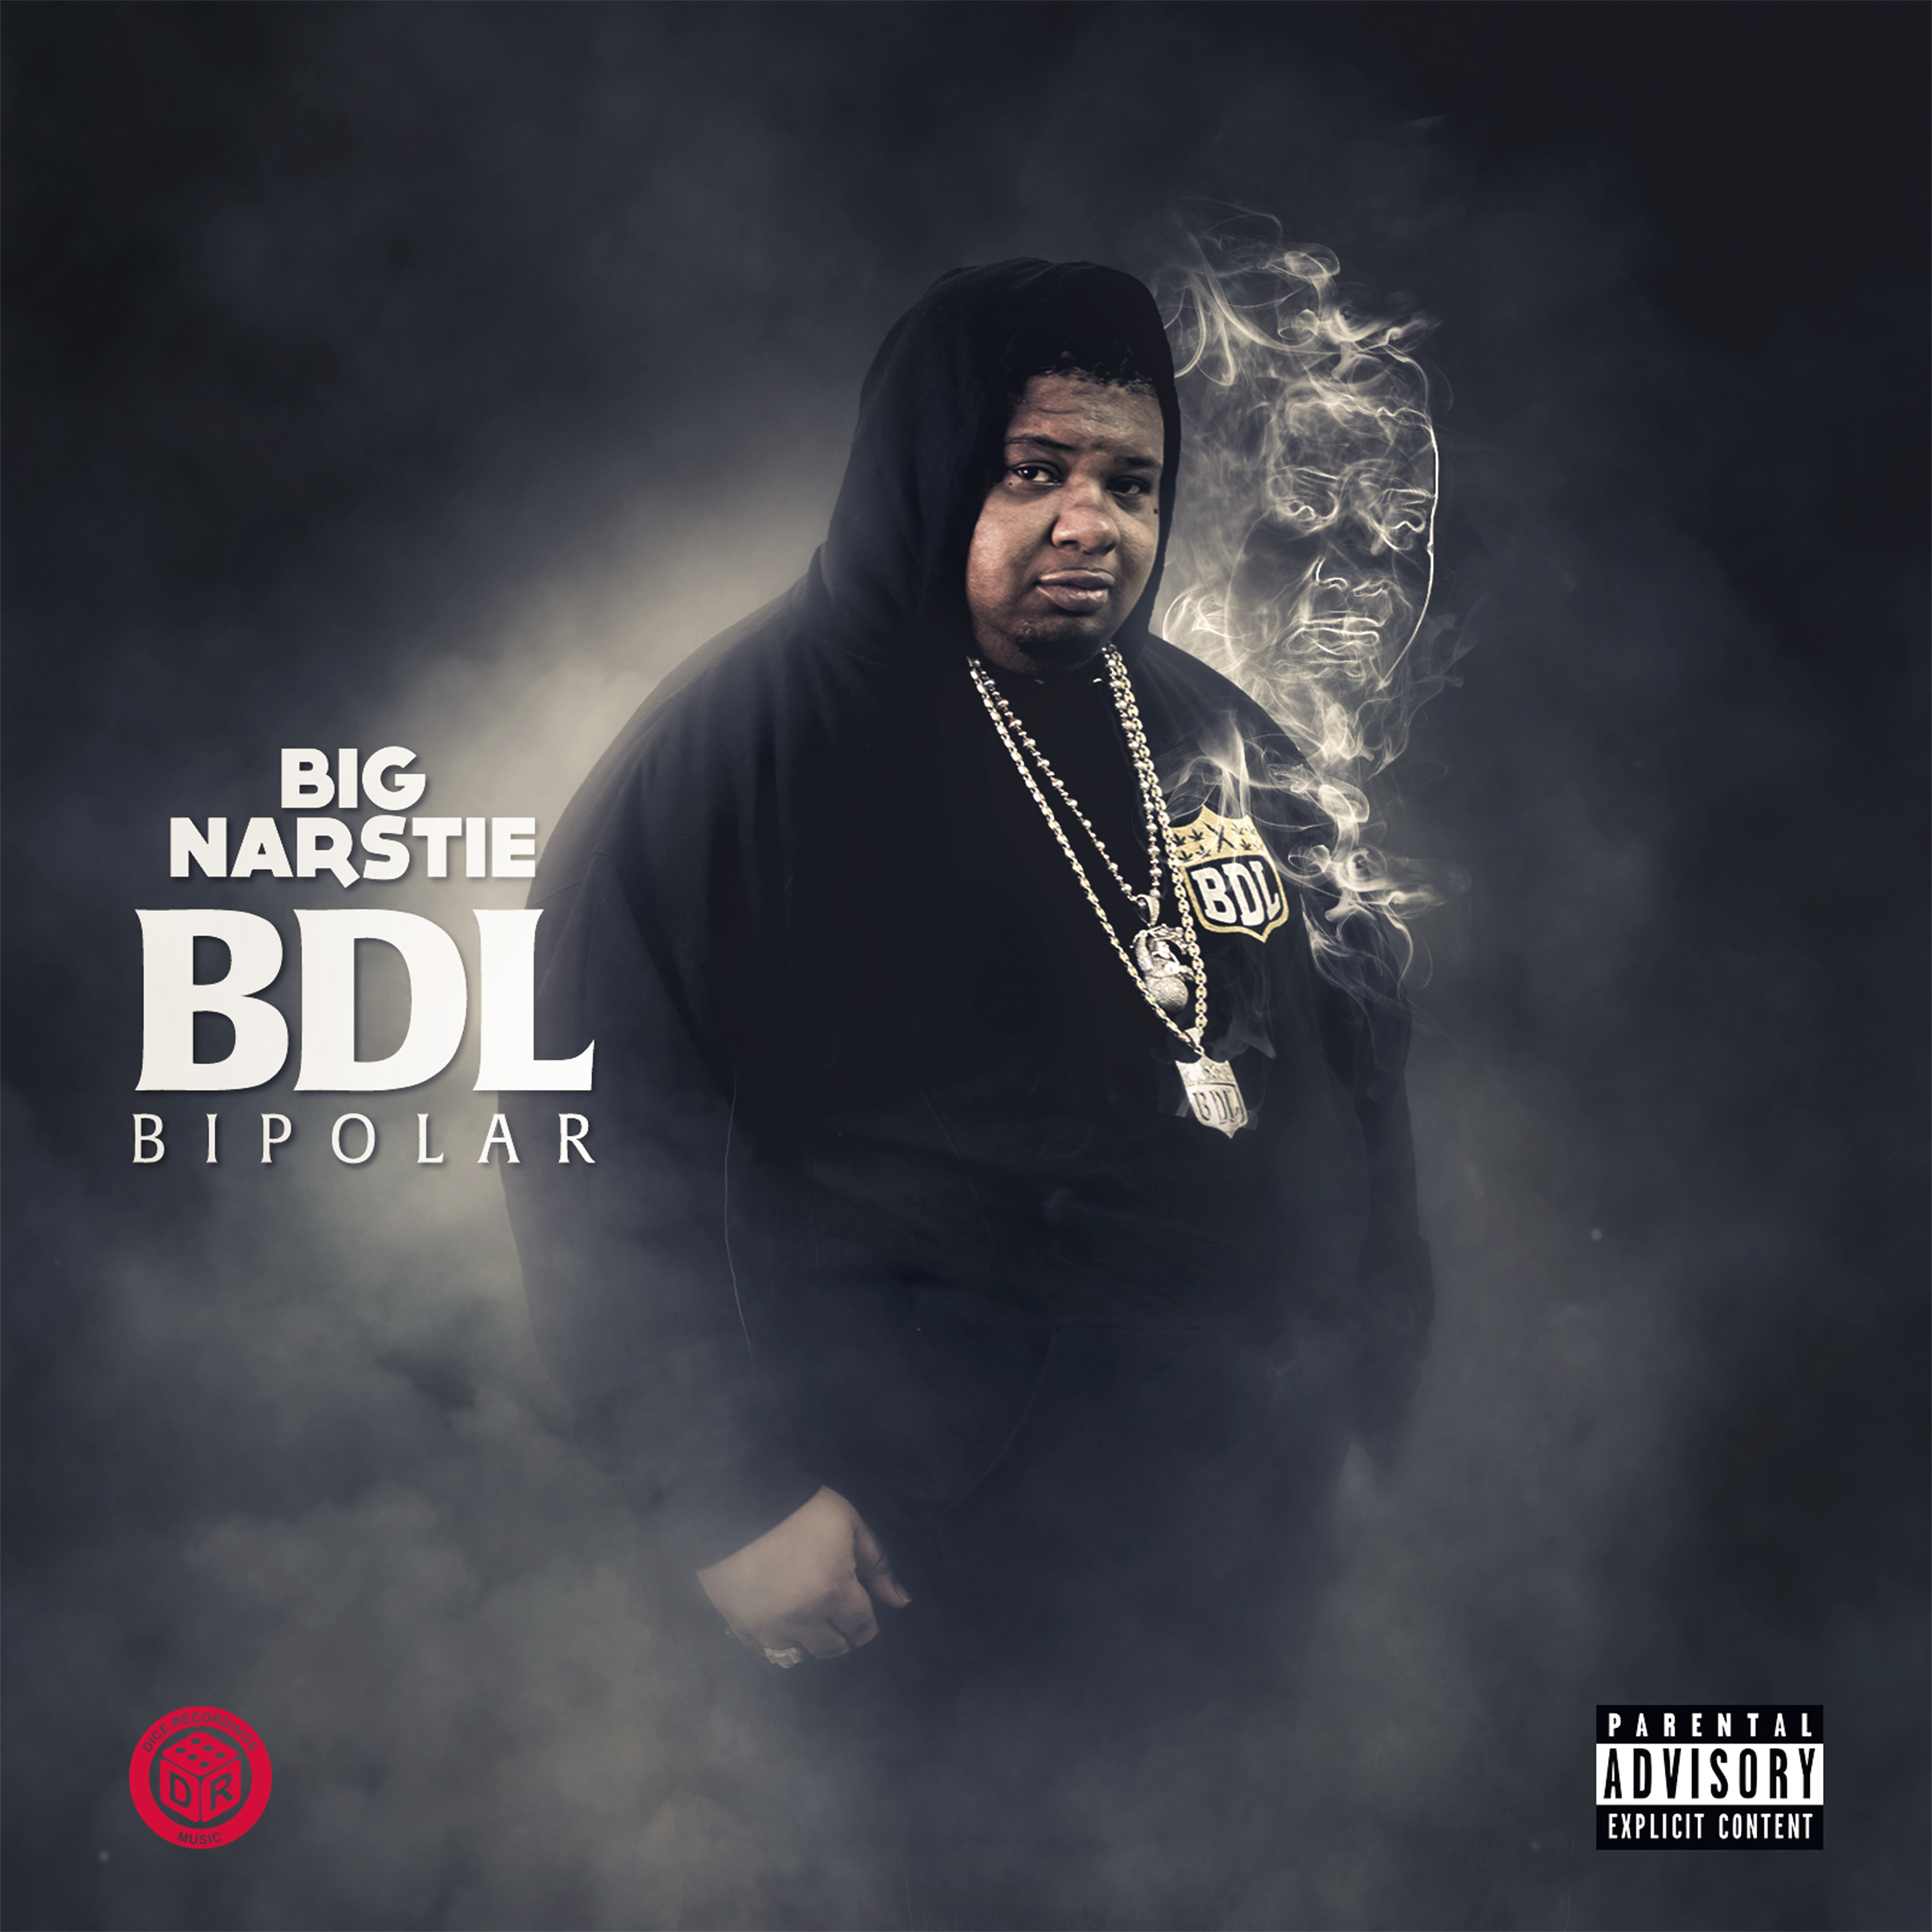 Big narstie bdl pack shot